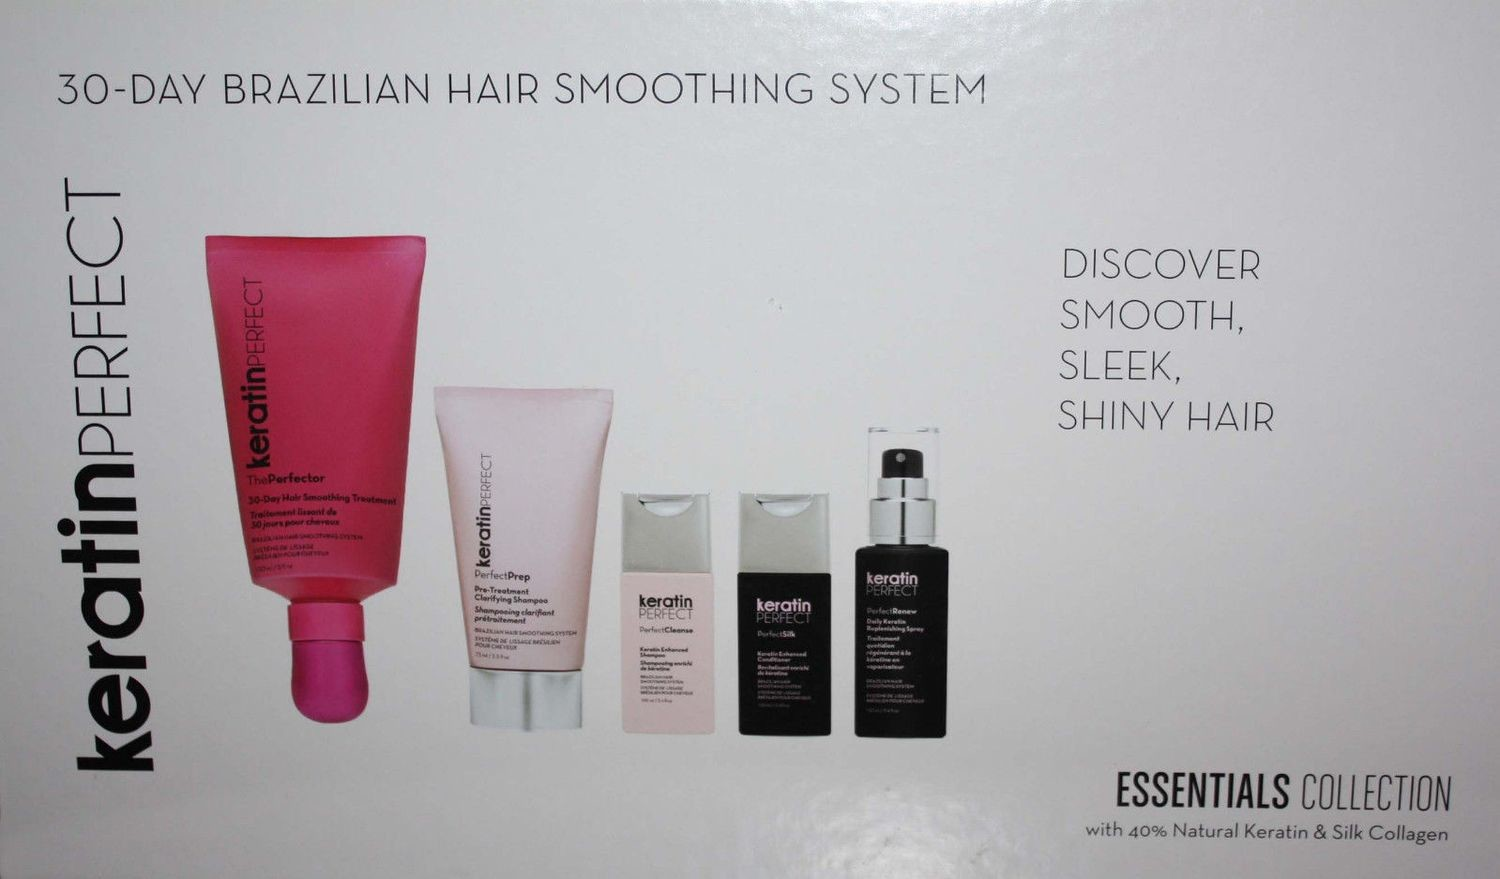 KeratinPerfect 30-Day Brazilian Hair Smoothing System